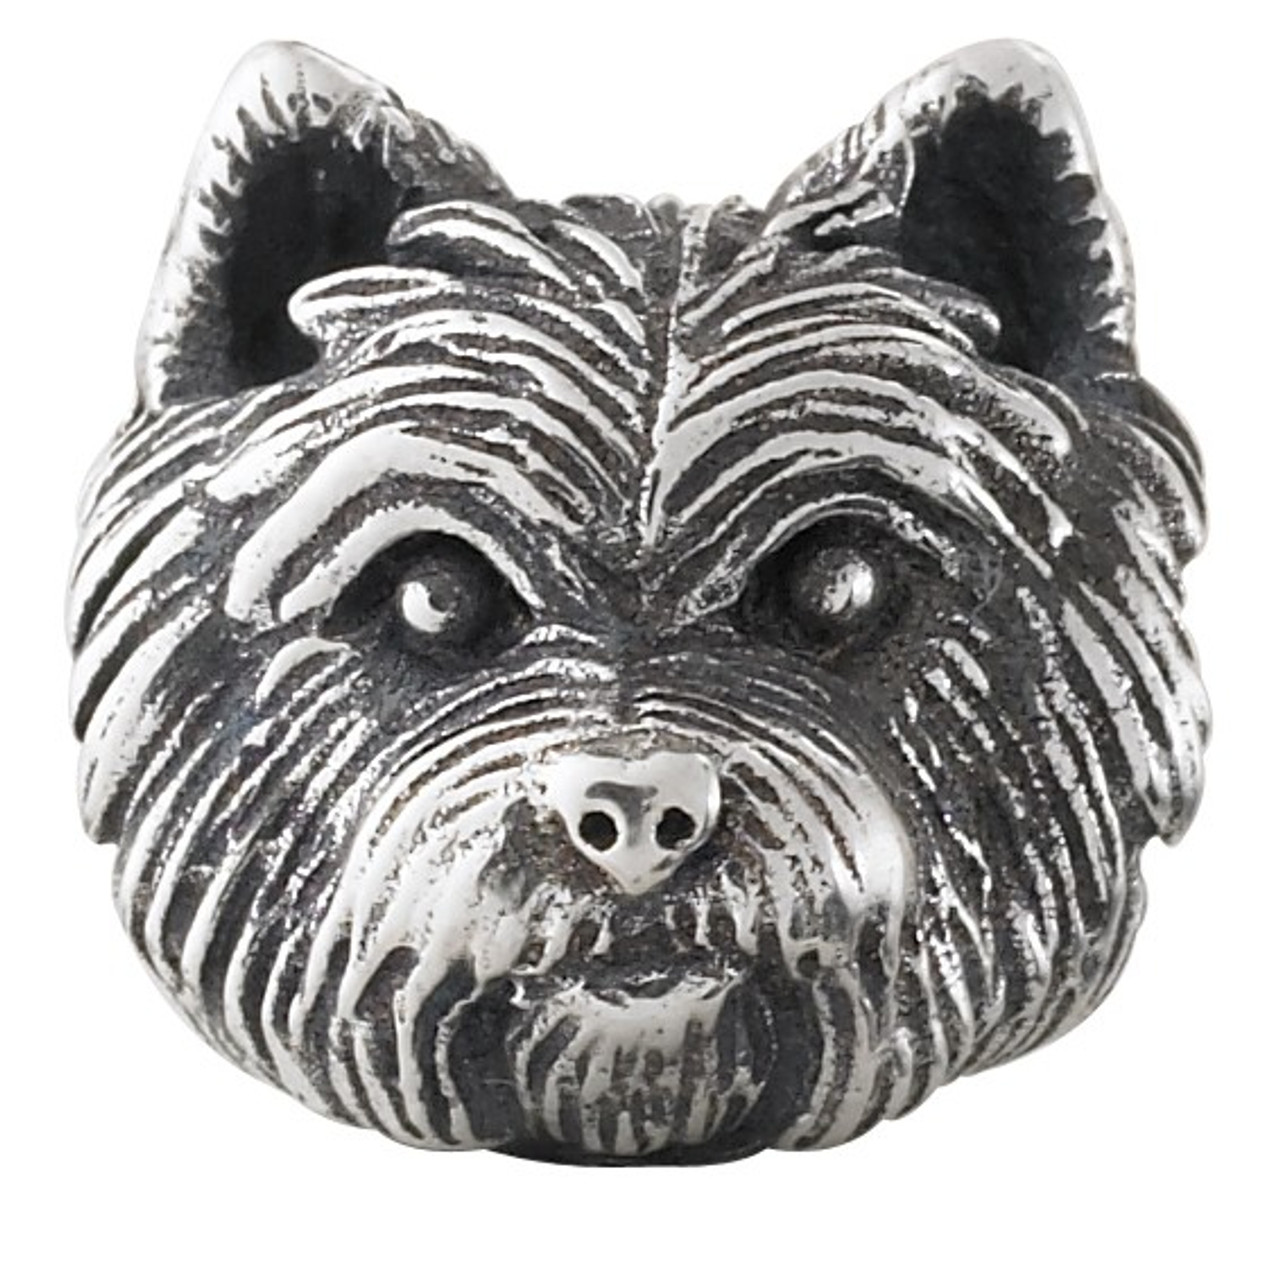 11ec68187 West Highland Terrier Charm Bead - Michael Gallagher Jewelers